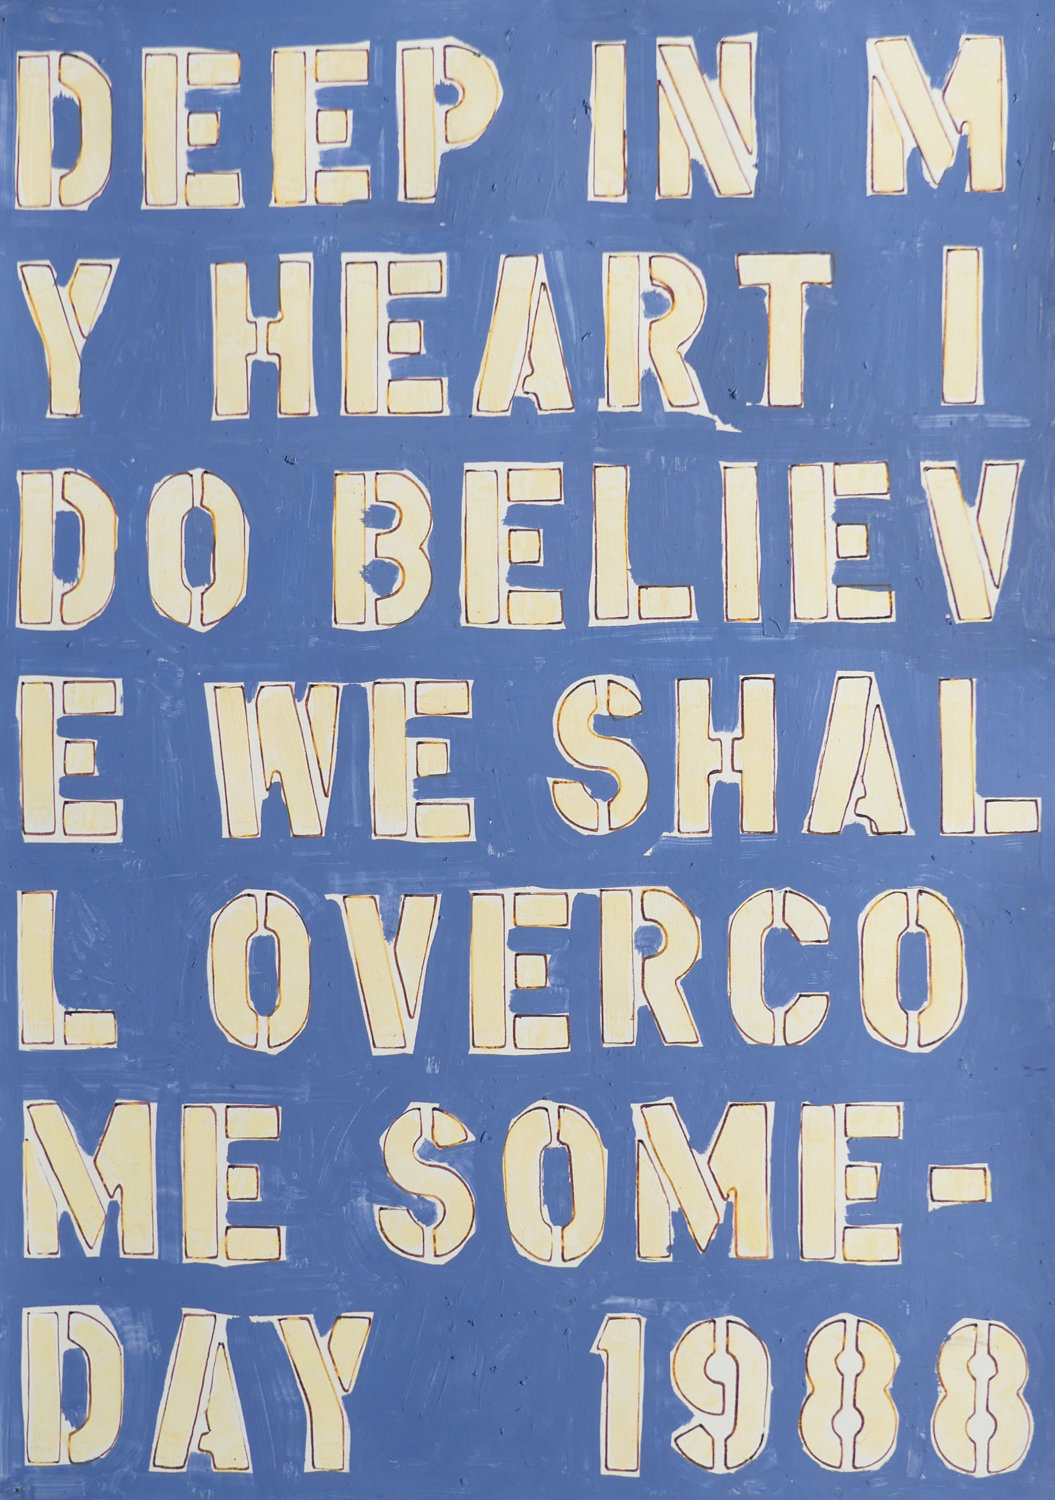 In 1988, Tim Greathouse painted a lyric from the gospel song 'We Shall Overcome.'